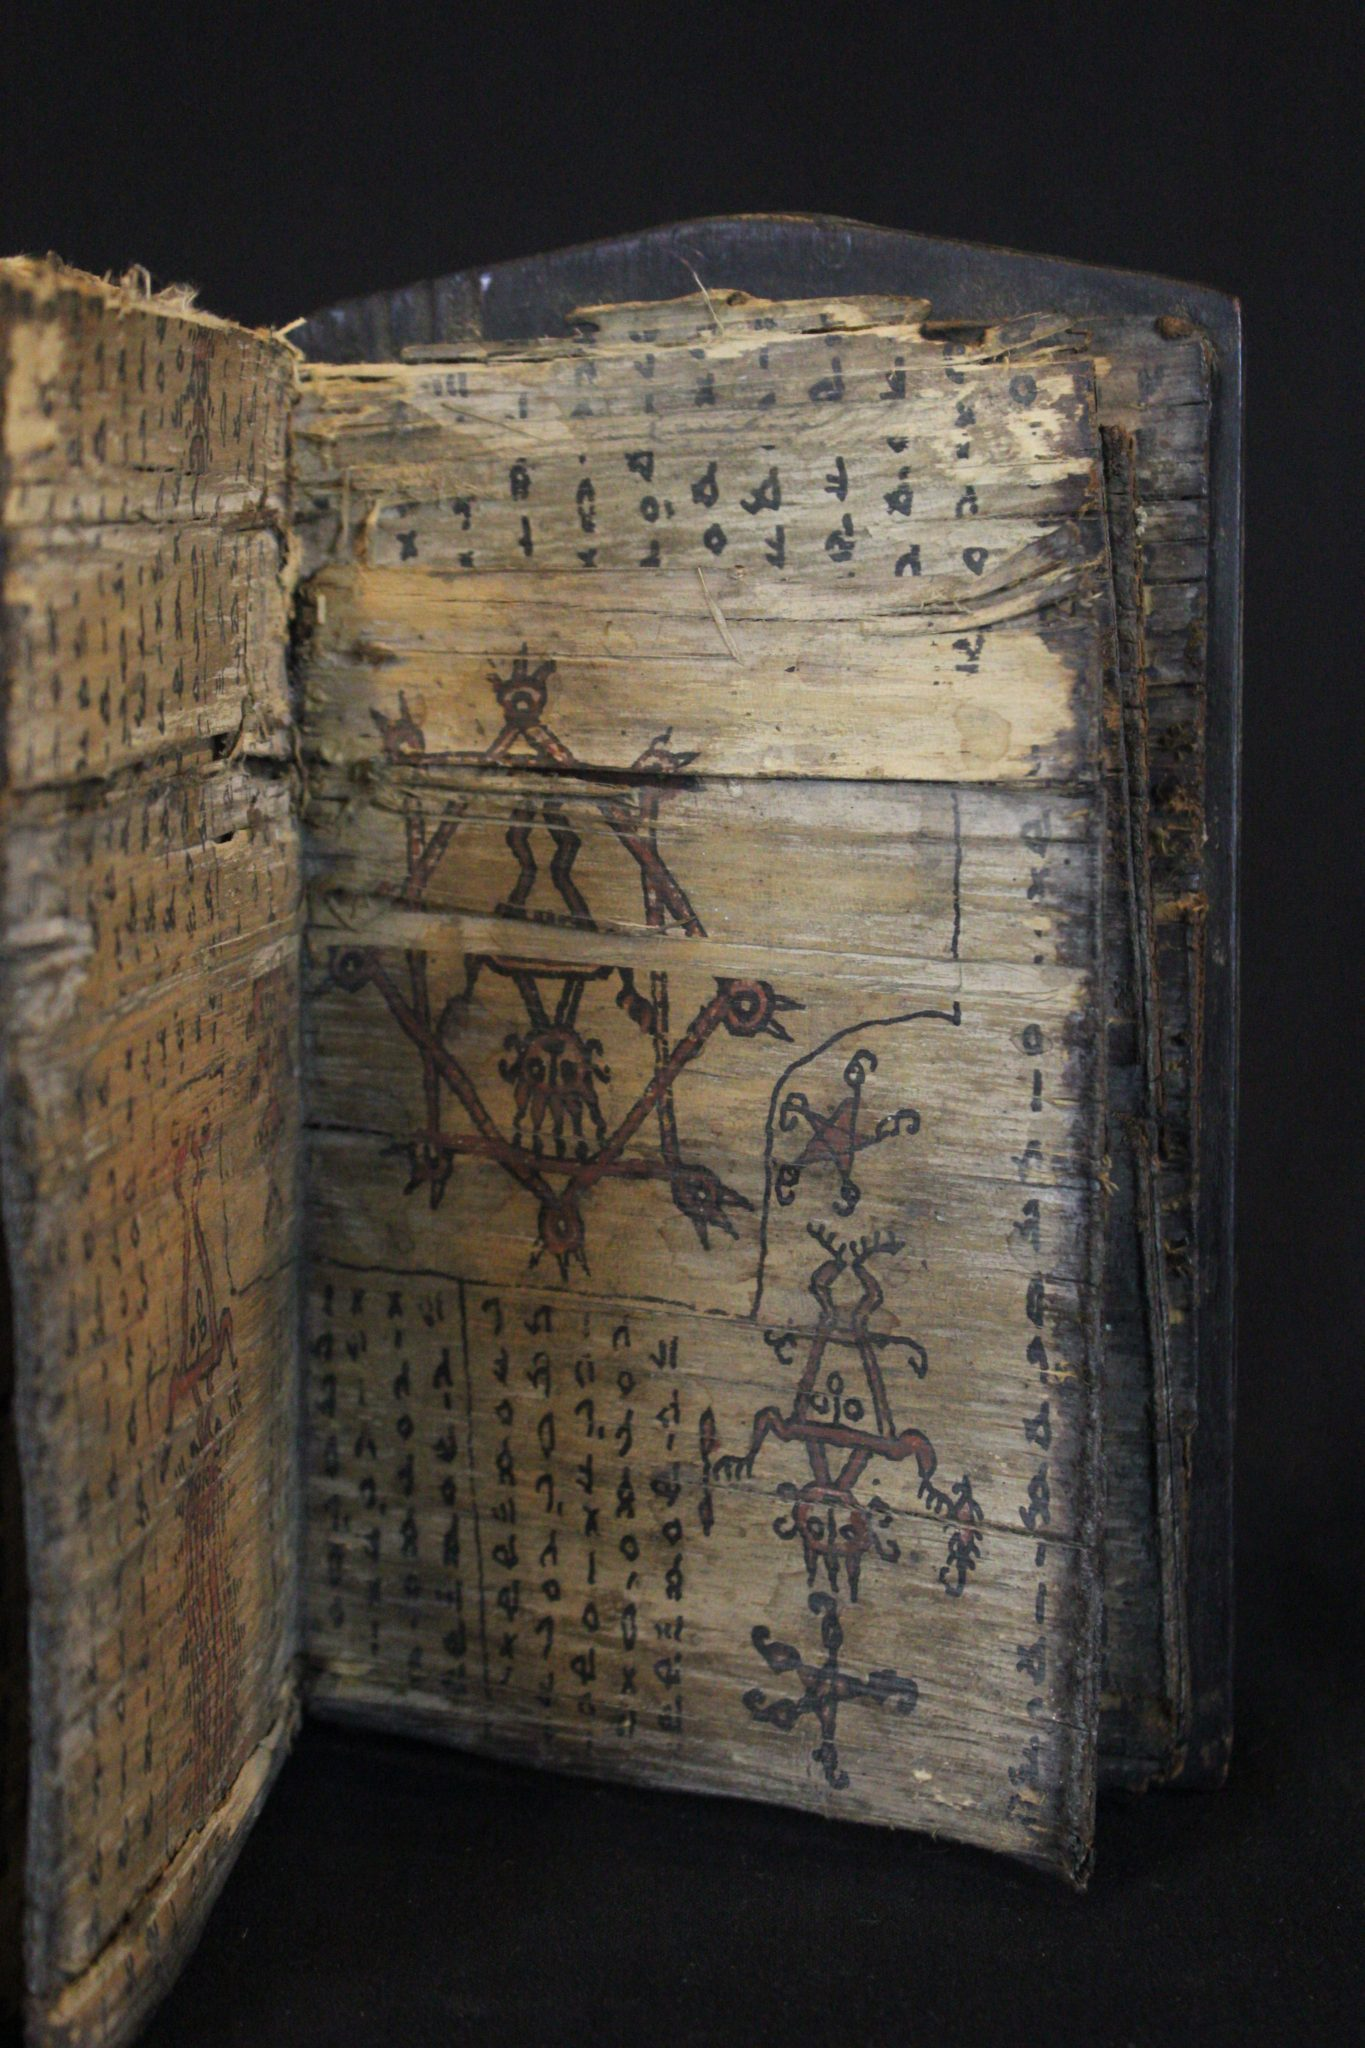 Inside Detail of Shaman's Medicine/Magic Book, Sumatra, Indonesia Batak tribe, Early 19th c, Wood cover, bark pages